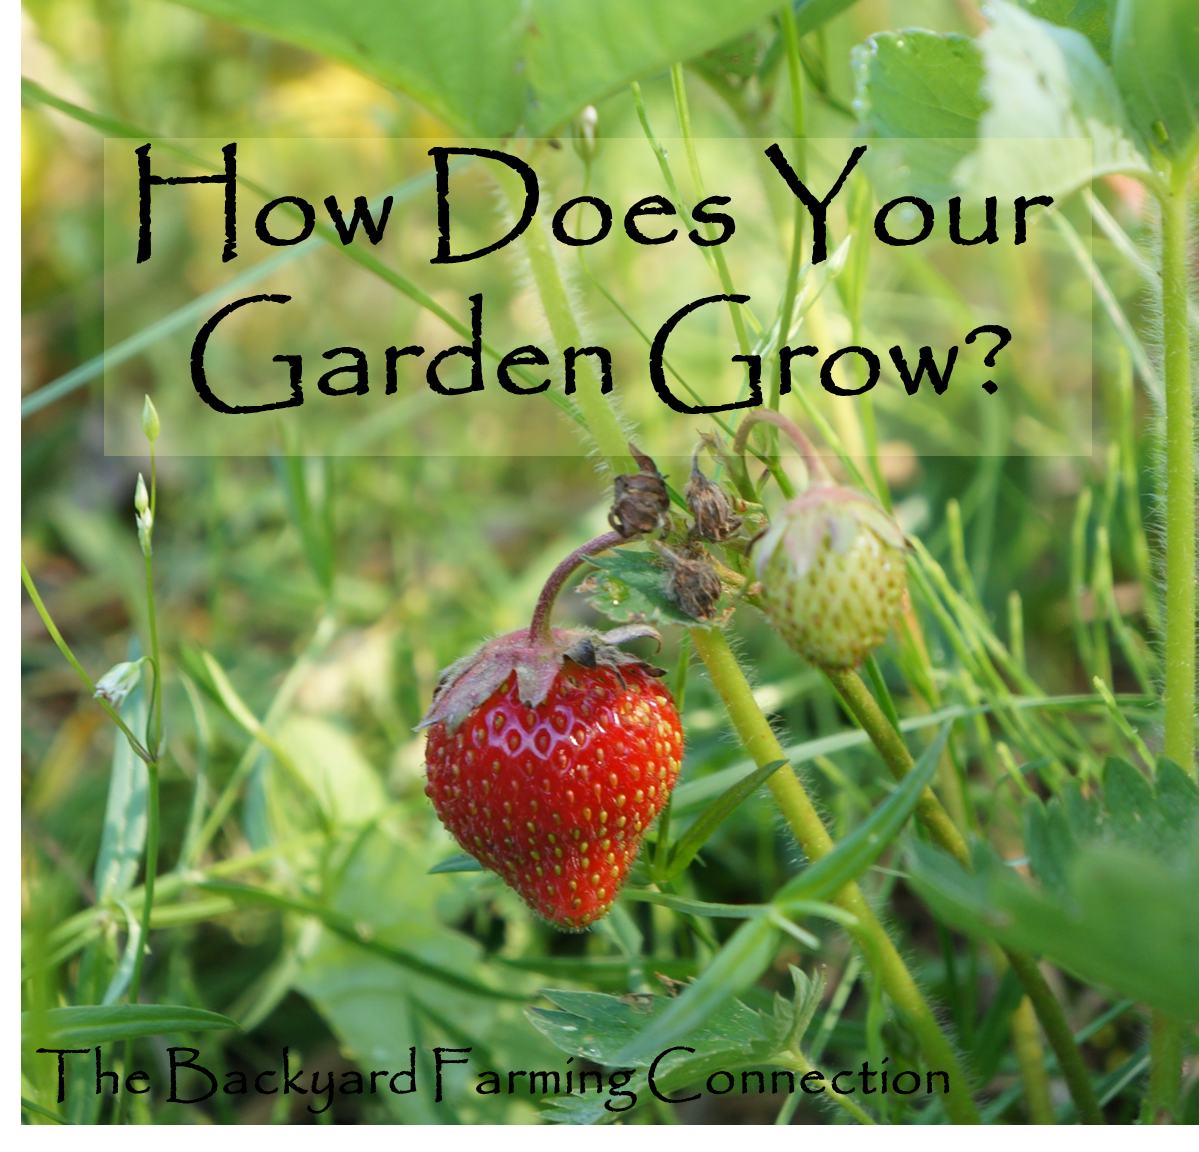 how to grow a garden 21 synonyms of grow from the merriam-webster thesaurus, plus 36 related words,  a dedicated home gardener who grows tomatoes in her small garden every summer.